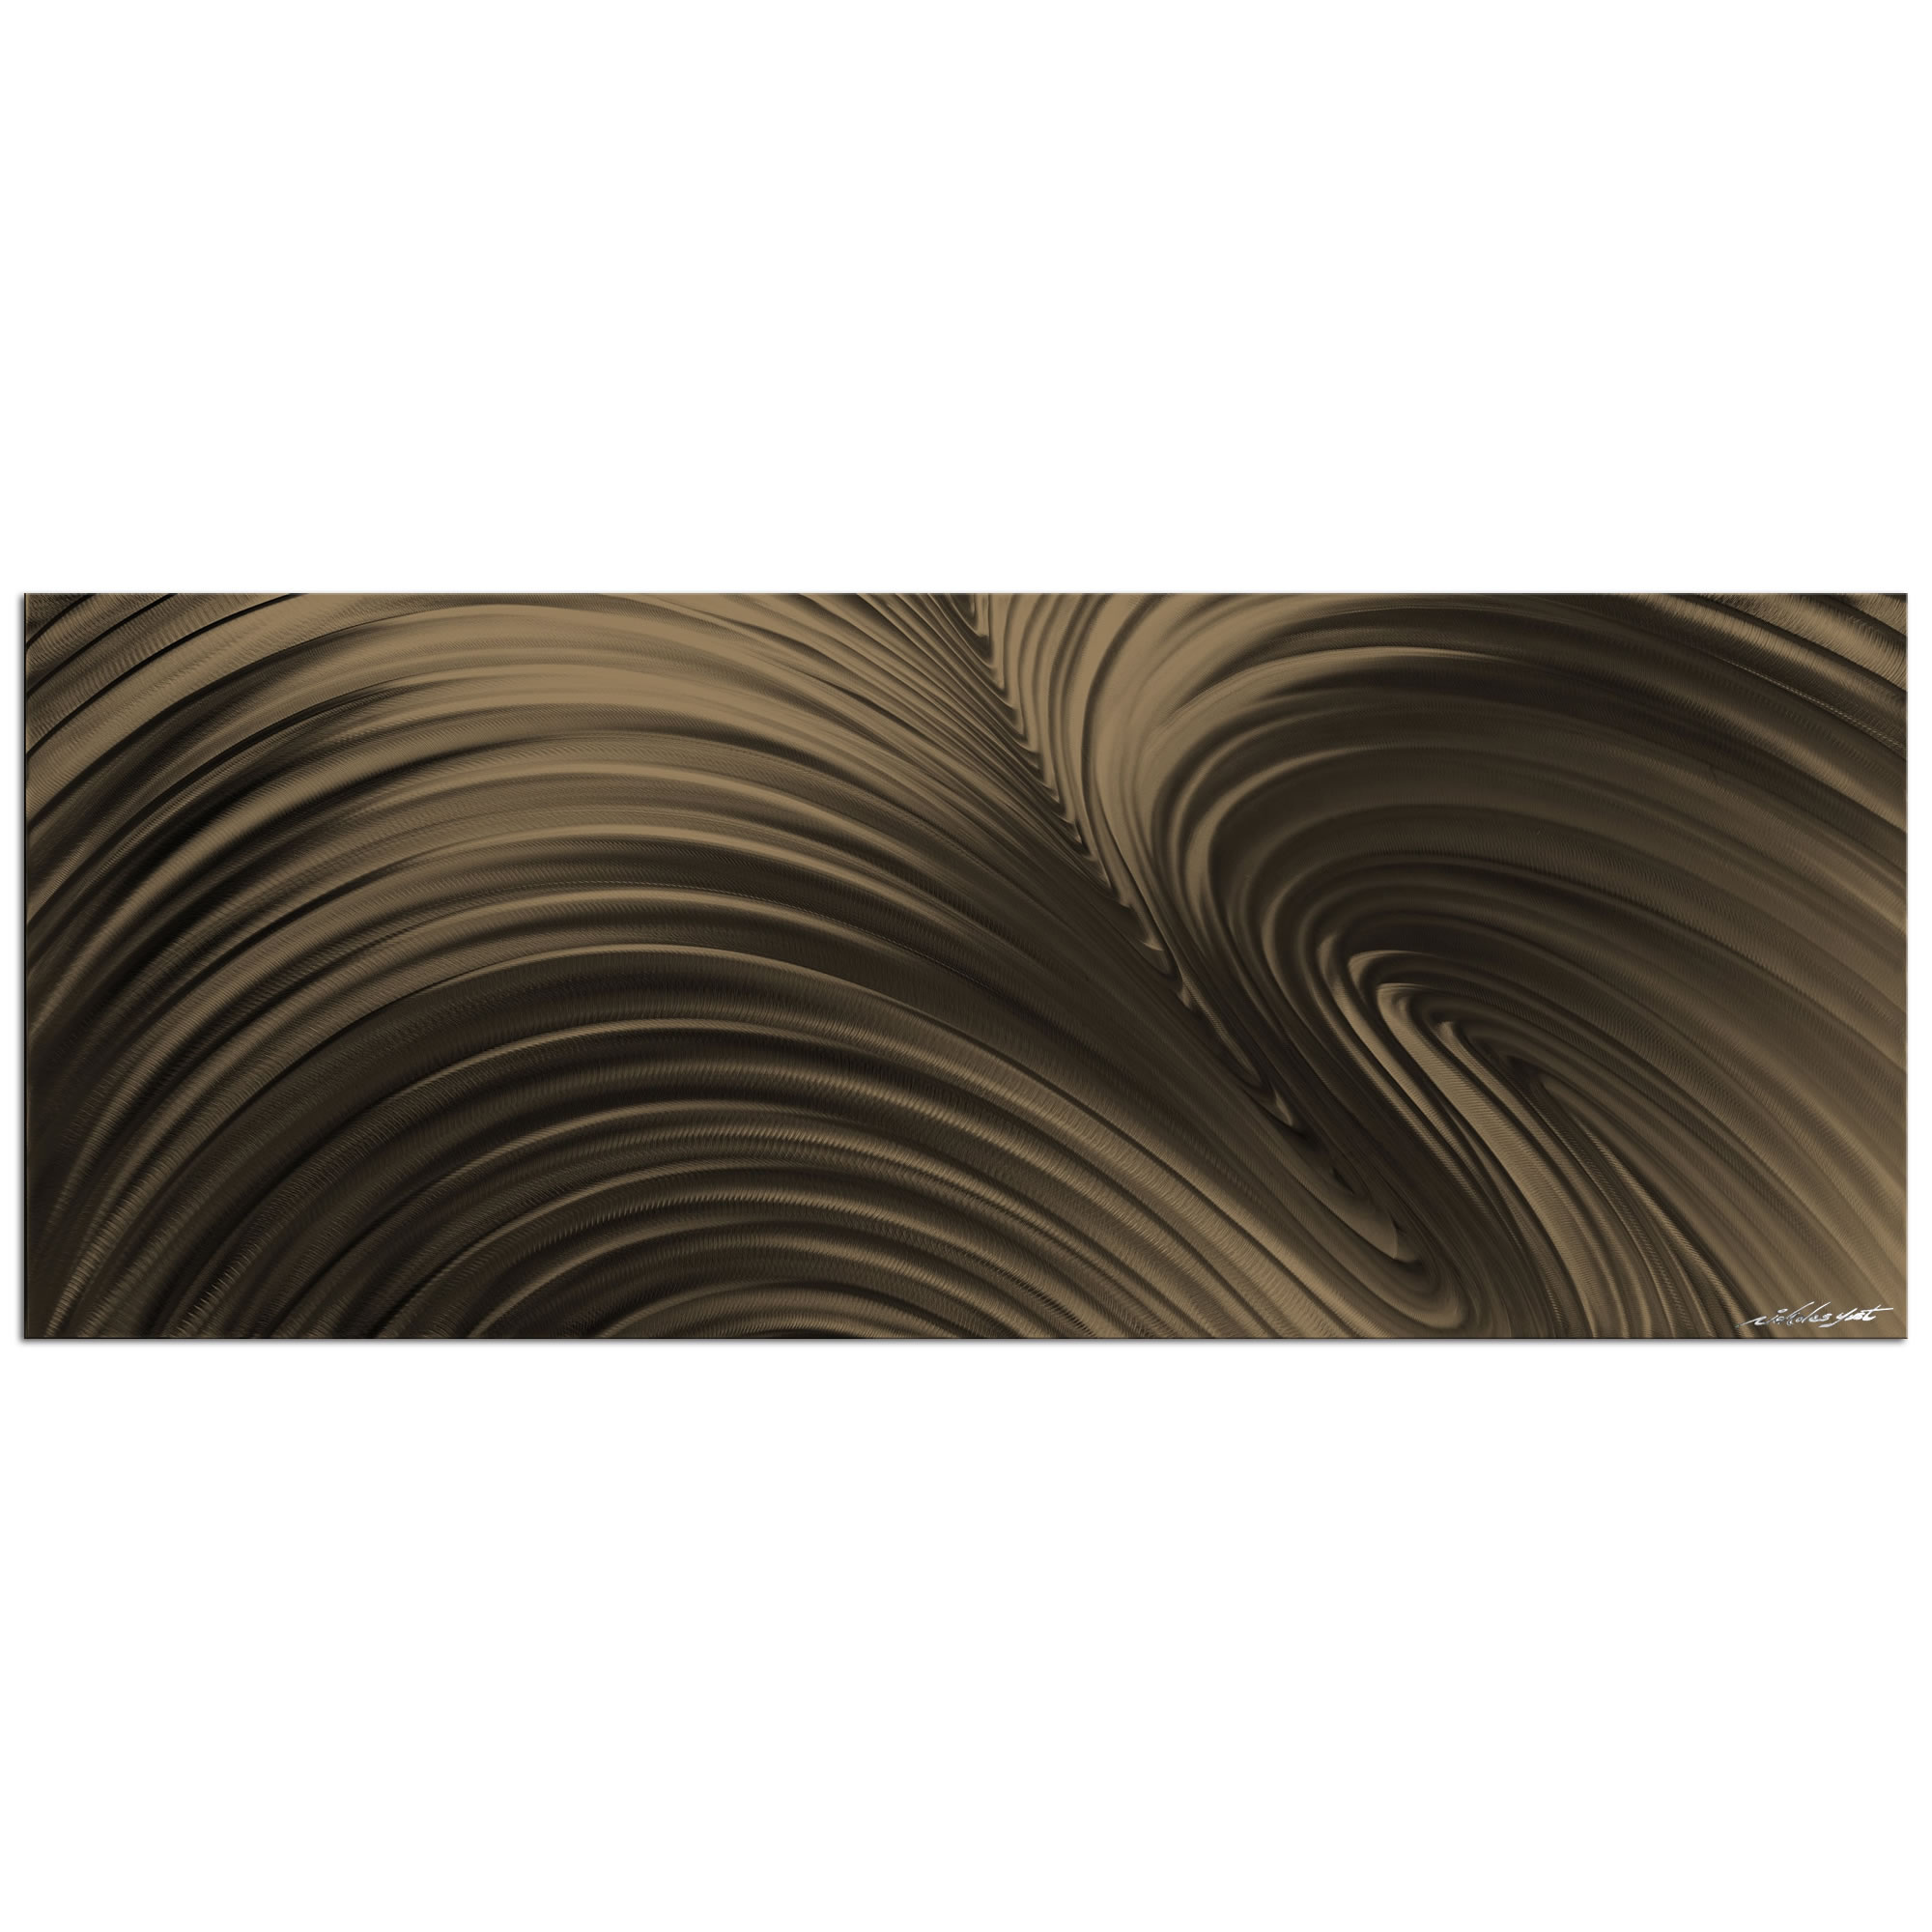 Fusion bronze contemporary metal wall art